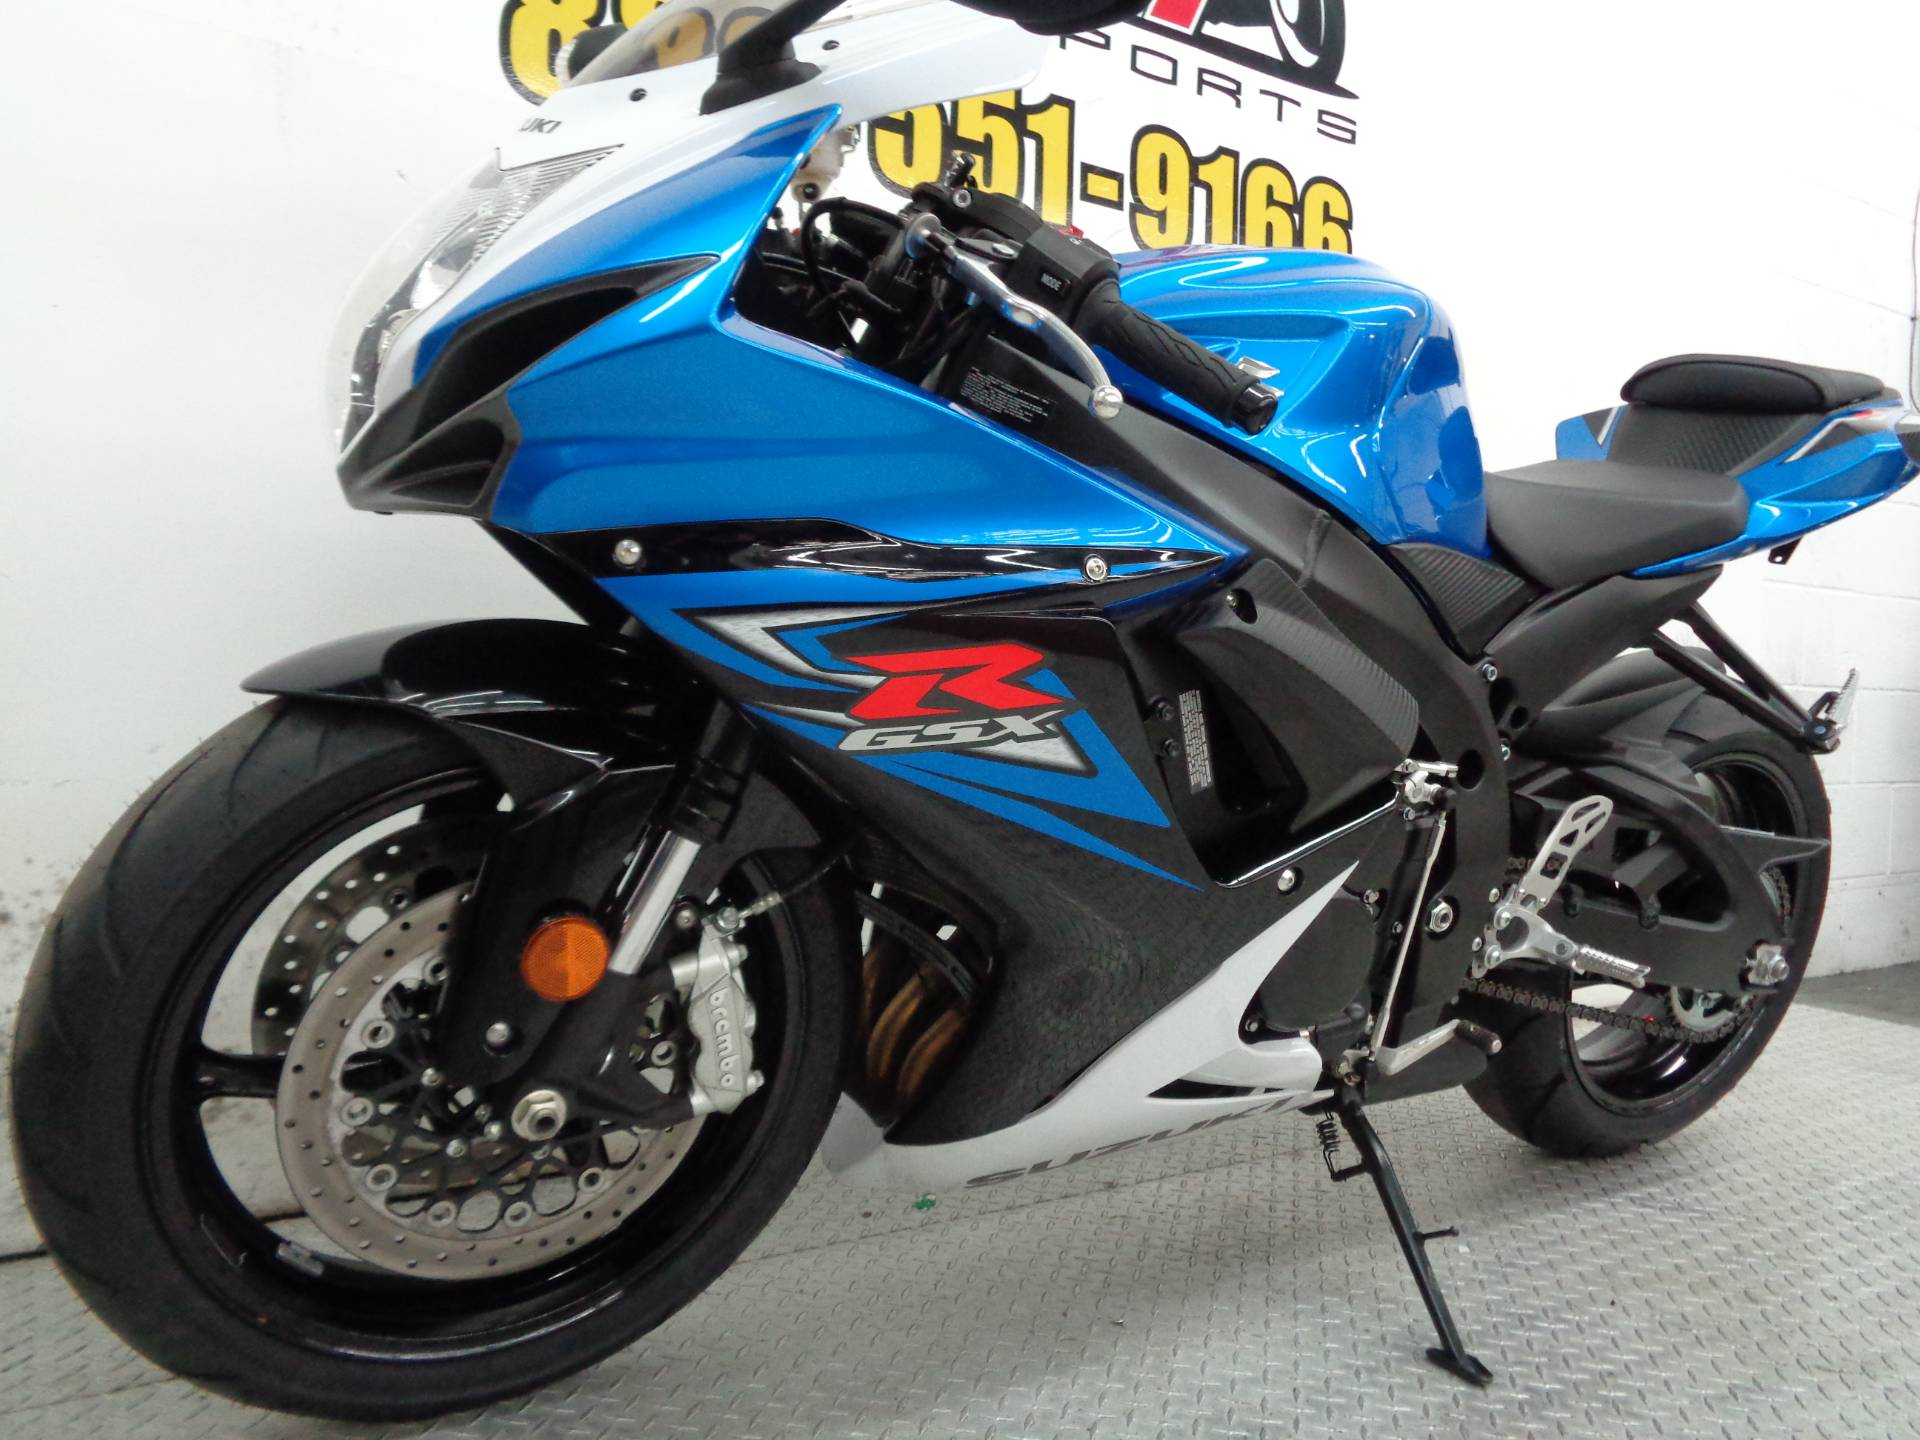 Tulsa Suzuki Motorcycle Dealers